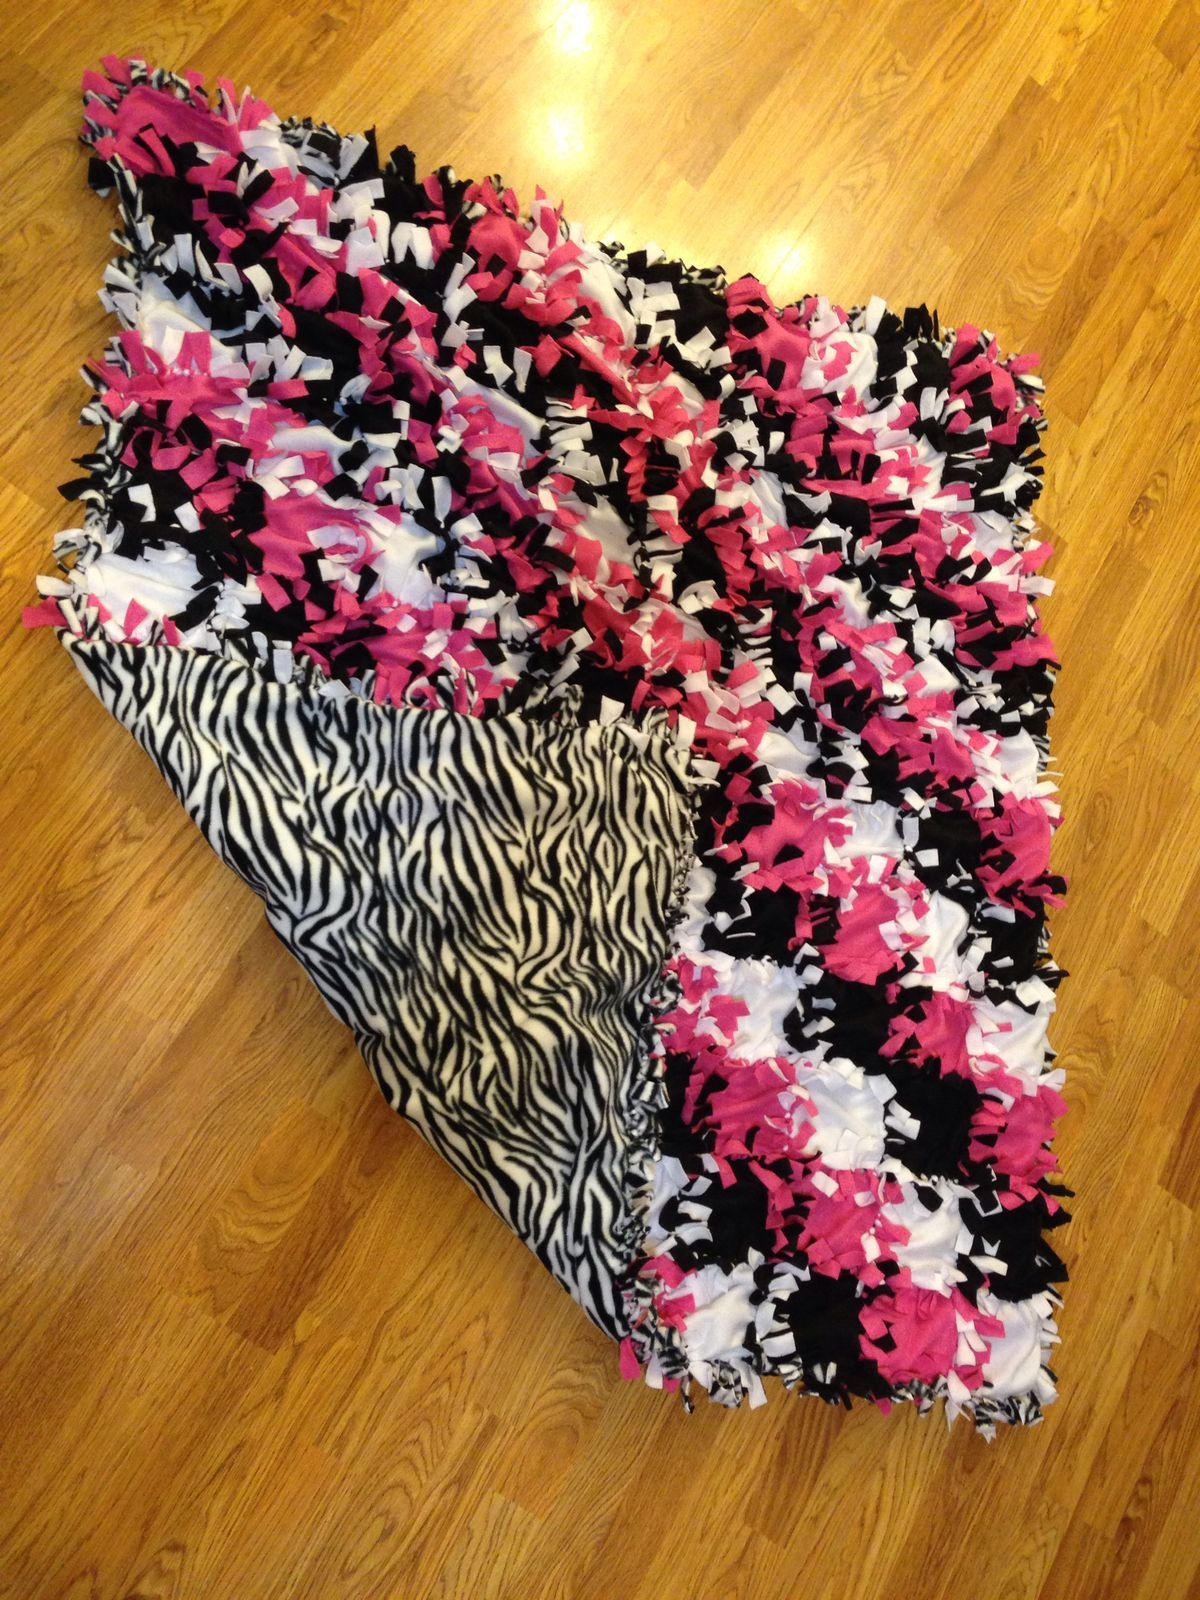 Diy No Sew Blanket Diy Heaven No Sew Blankets